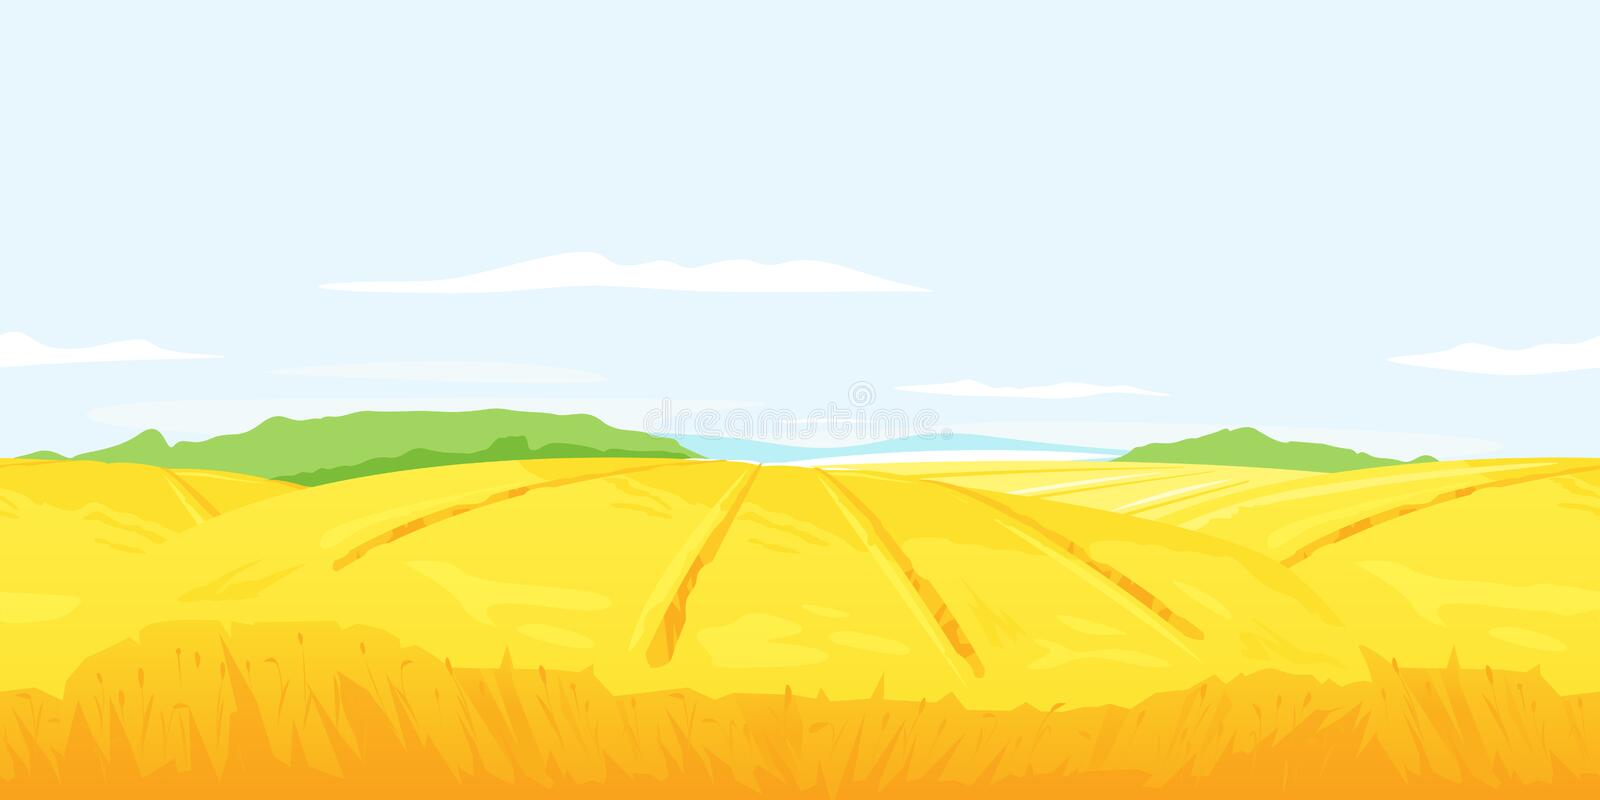 Wheat Field Cliparts, Stock Vector And Royalty Free Wheat Field  Illustrations | Wheat fields, Stock vector, Wheat